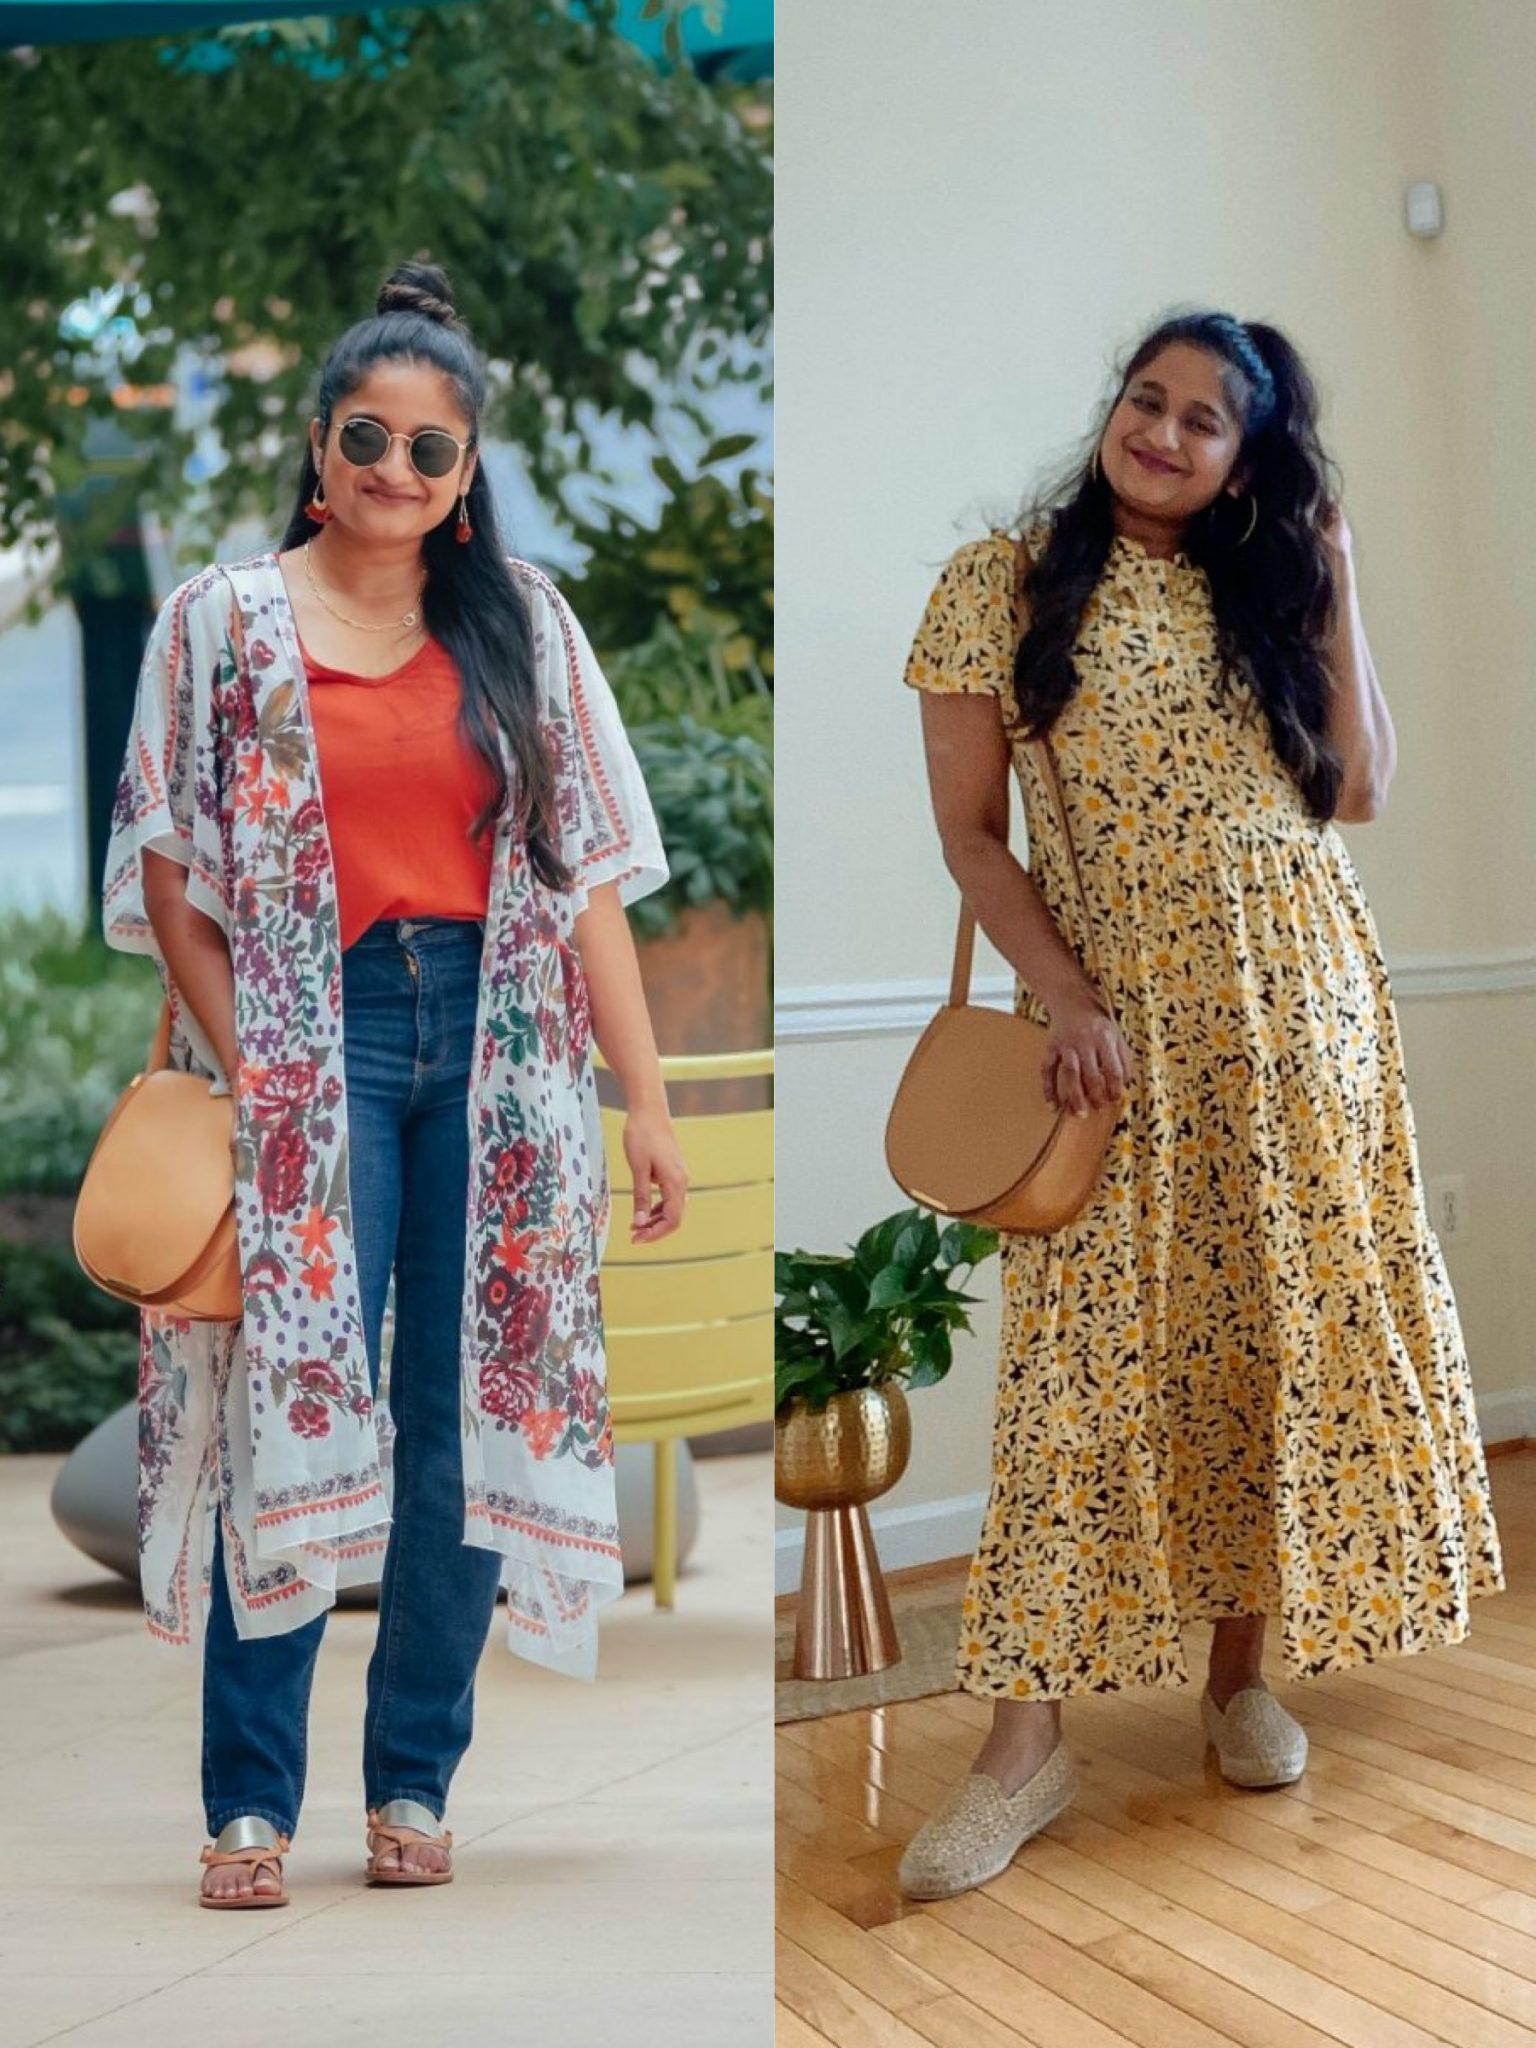 How to wear Cuyana Half Moon Shoulder Bag Review | Handbags Under $500 by popular Maryland modest fashion blog, Dreaming Loud: collage image of a woman wearing a white floral print kimono, red shirts, jeans, silver and brown strap sandals, yellow floral print dress, silver loafers, and a Cuyanna half moon crossbody bag.